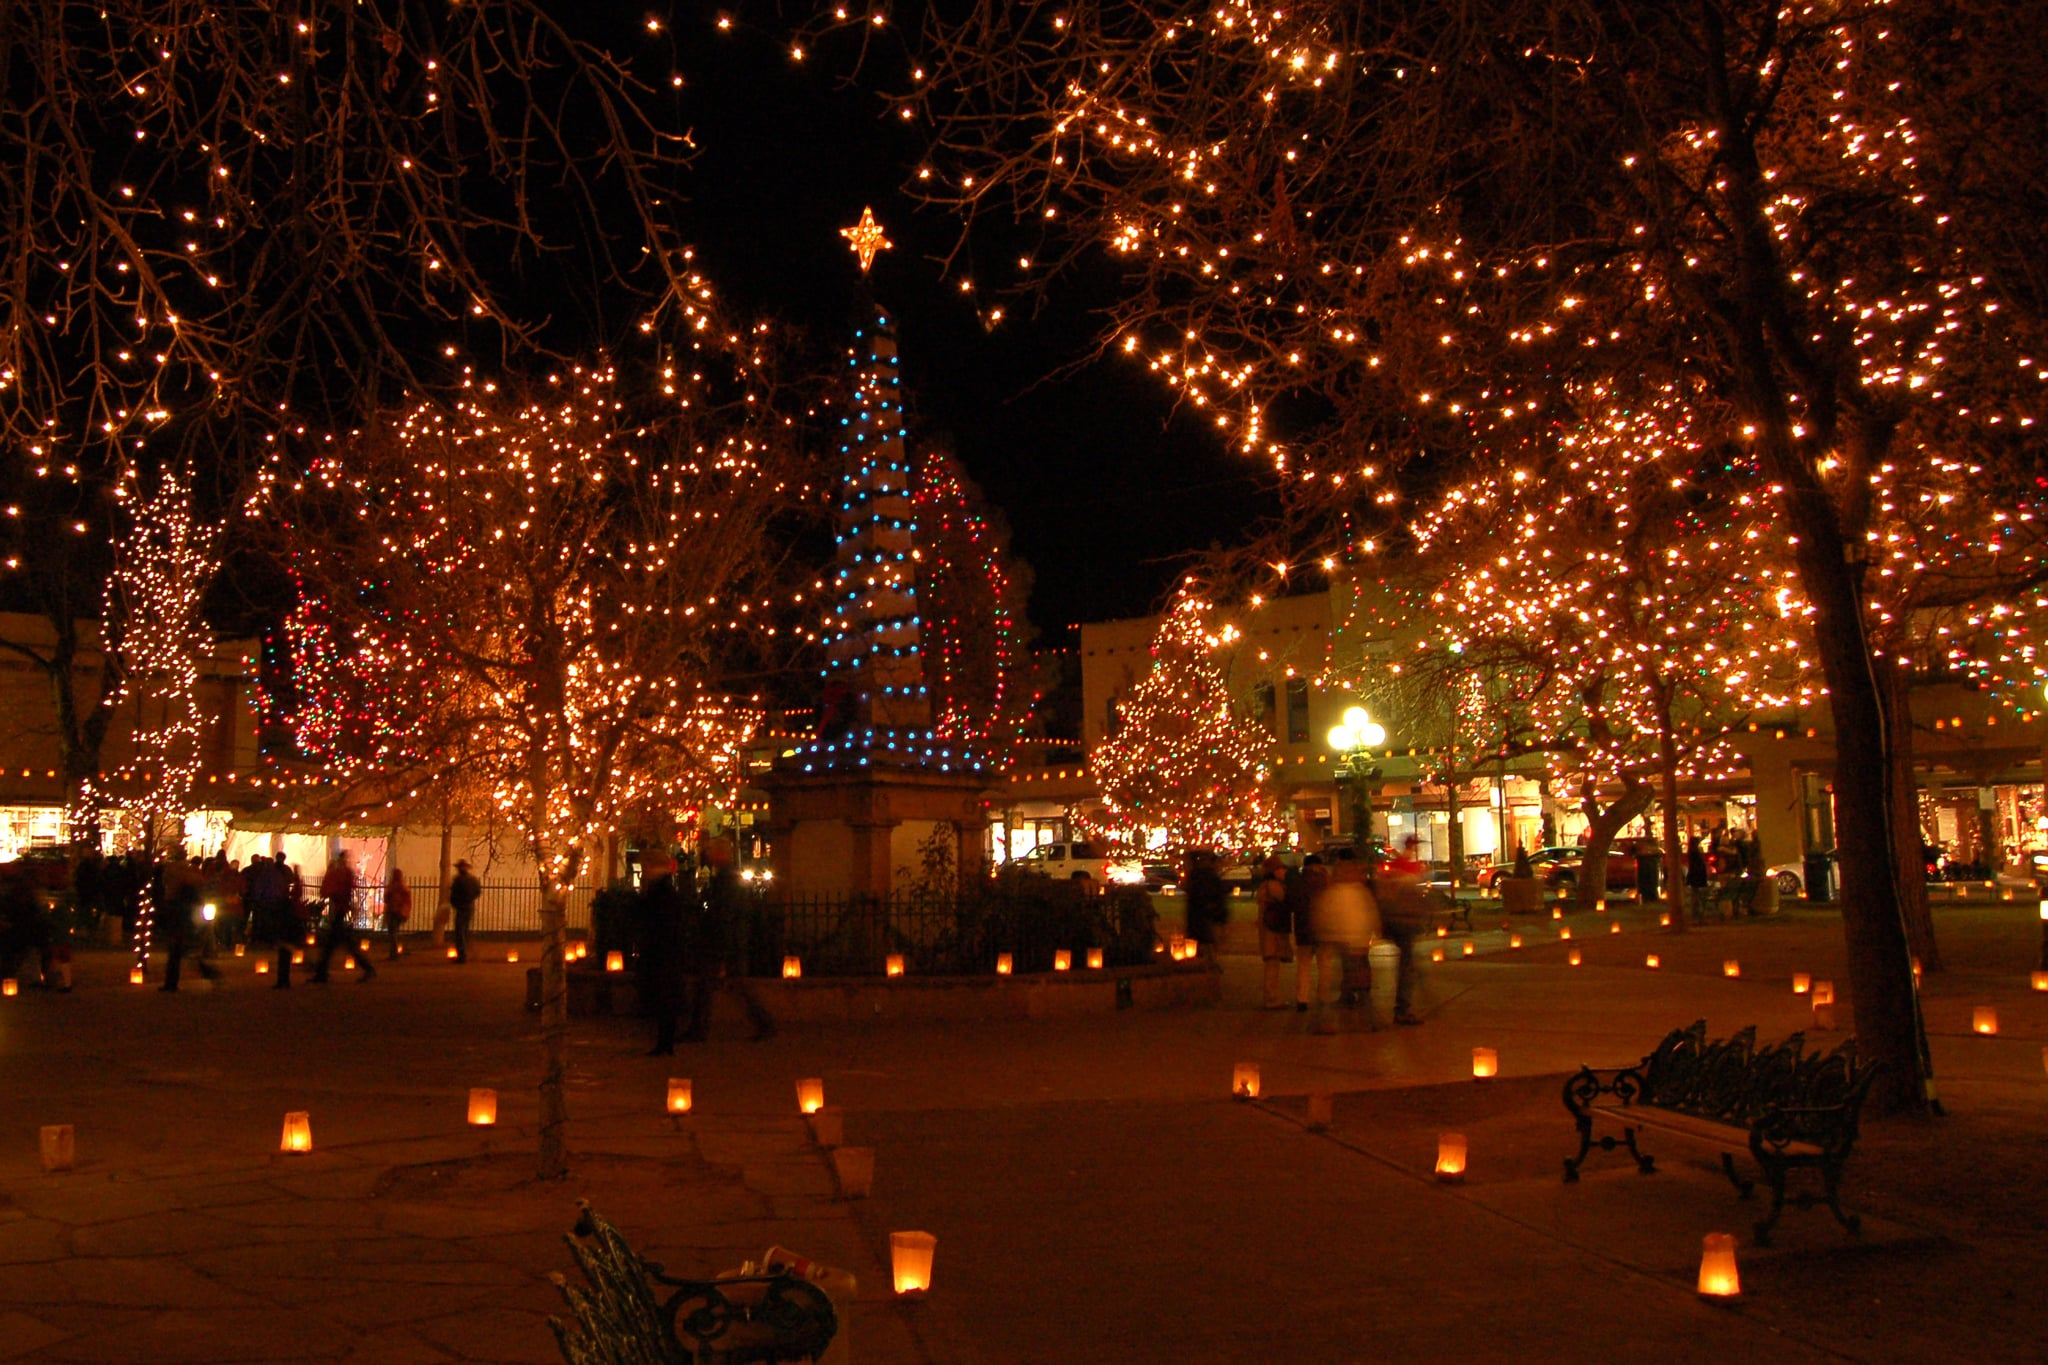 Santa Fe Nm Christmas Lovers Need To Add These 15 Cities To Their Holiday Travel List Popsugar Smart Living Photo 3